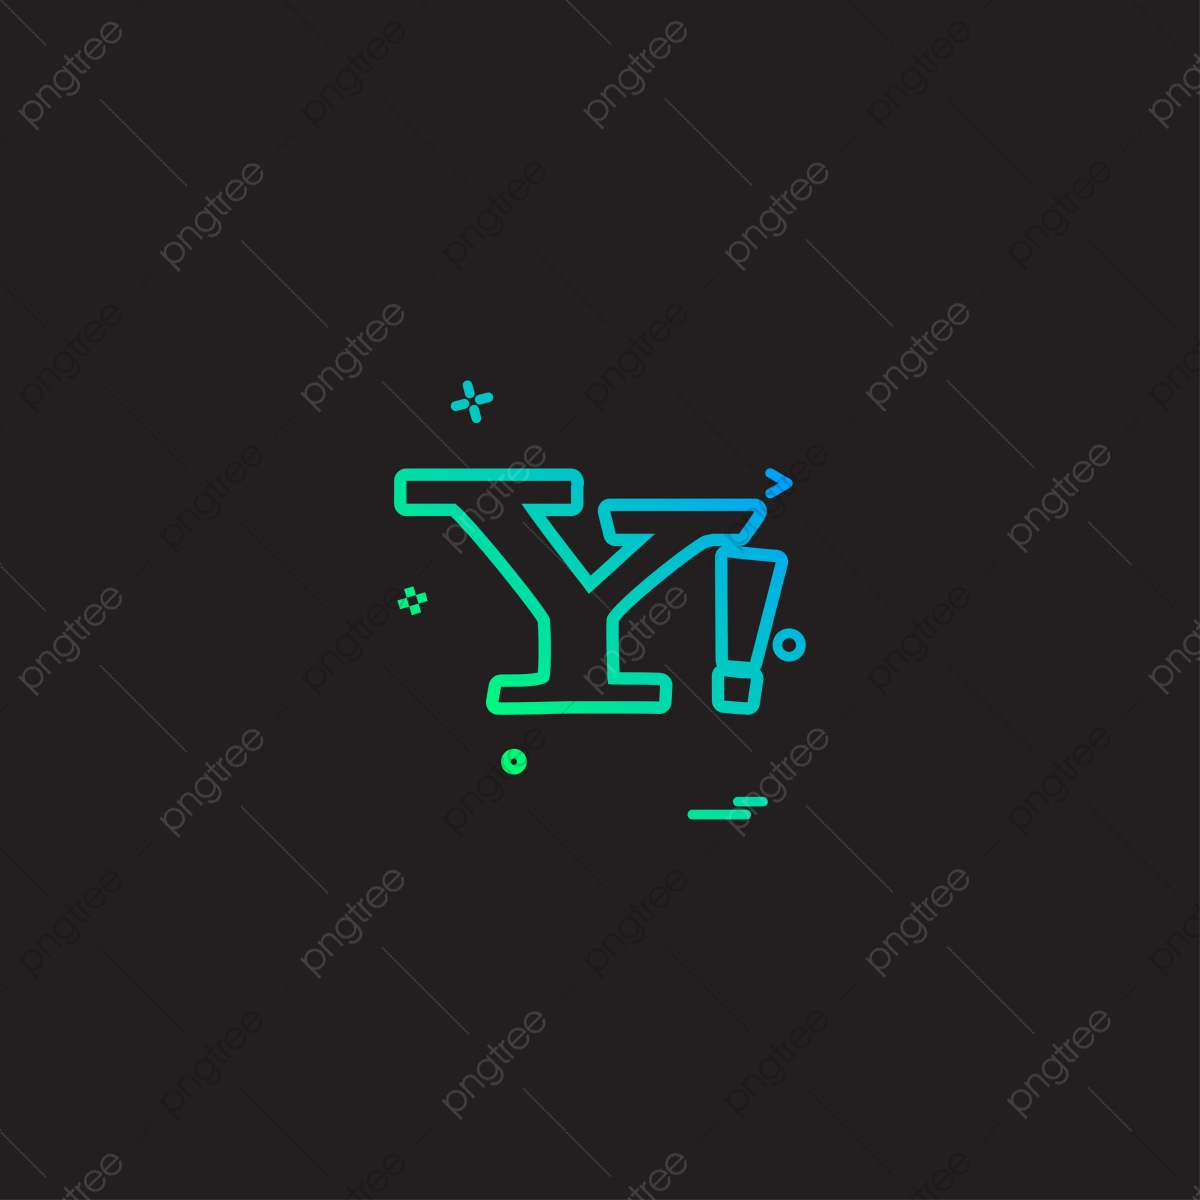 Yahoo Png Vector Psd And Clipart With Transparent Background For Free Download Pngtree